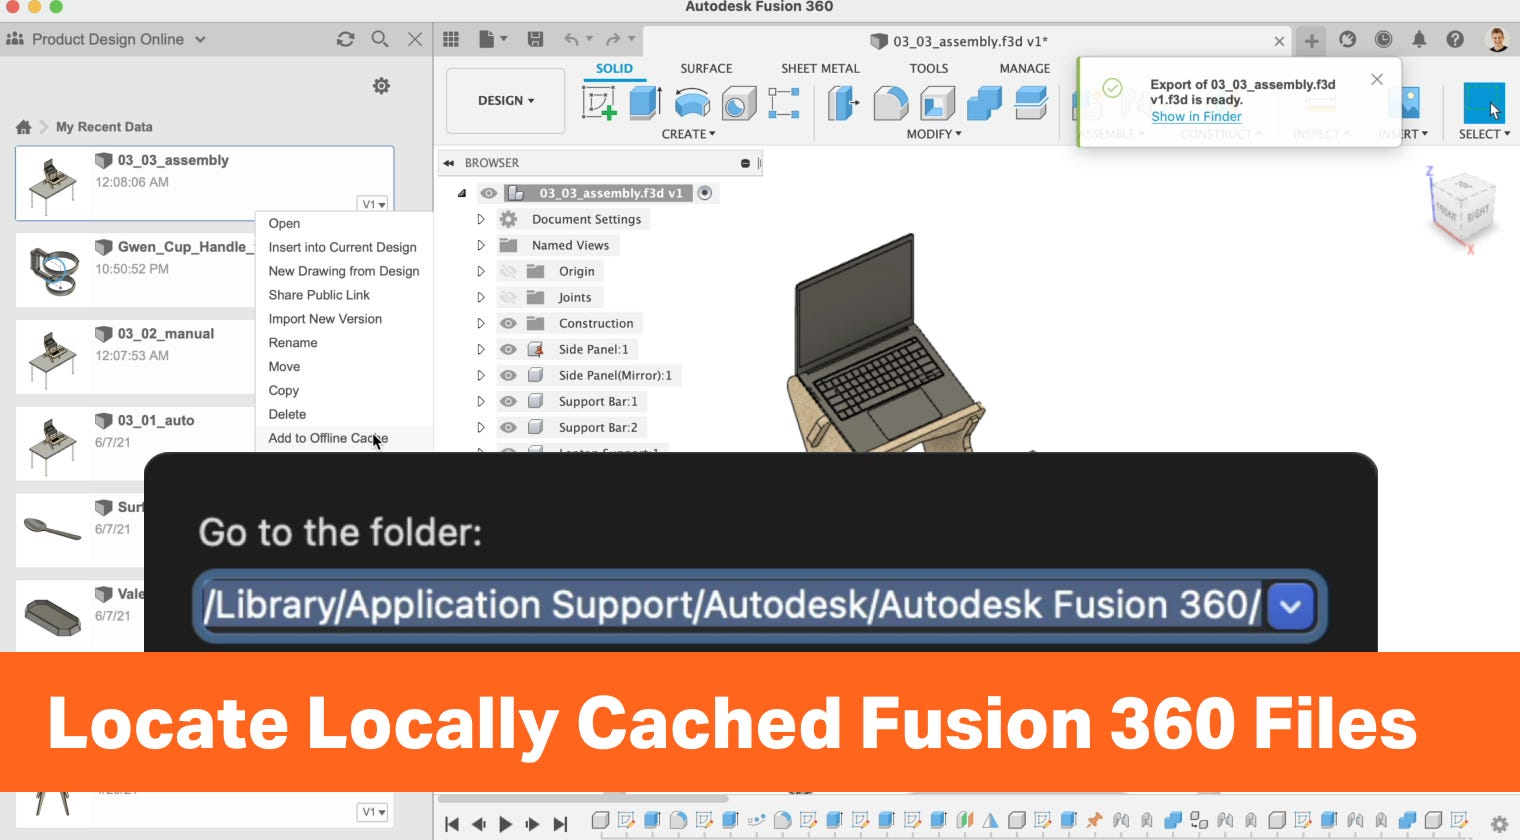 How to locate locally cached files in Autodesk Fusion 360